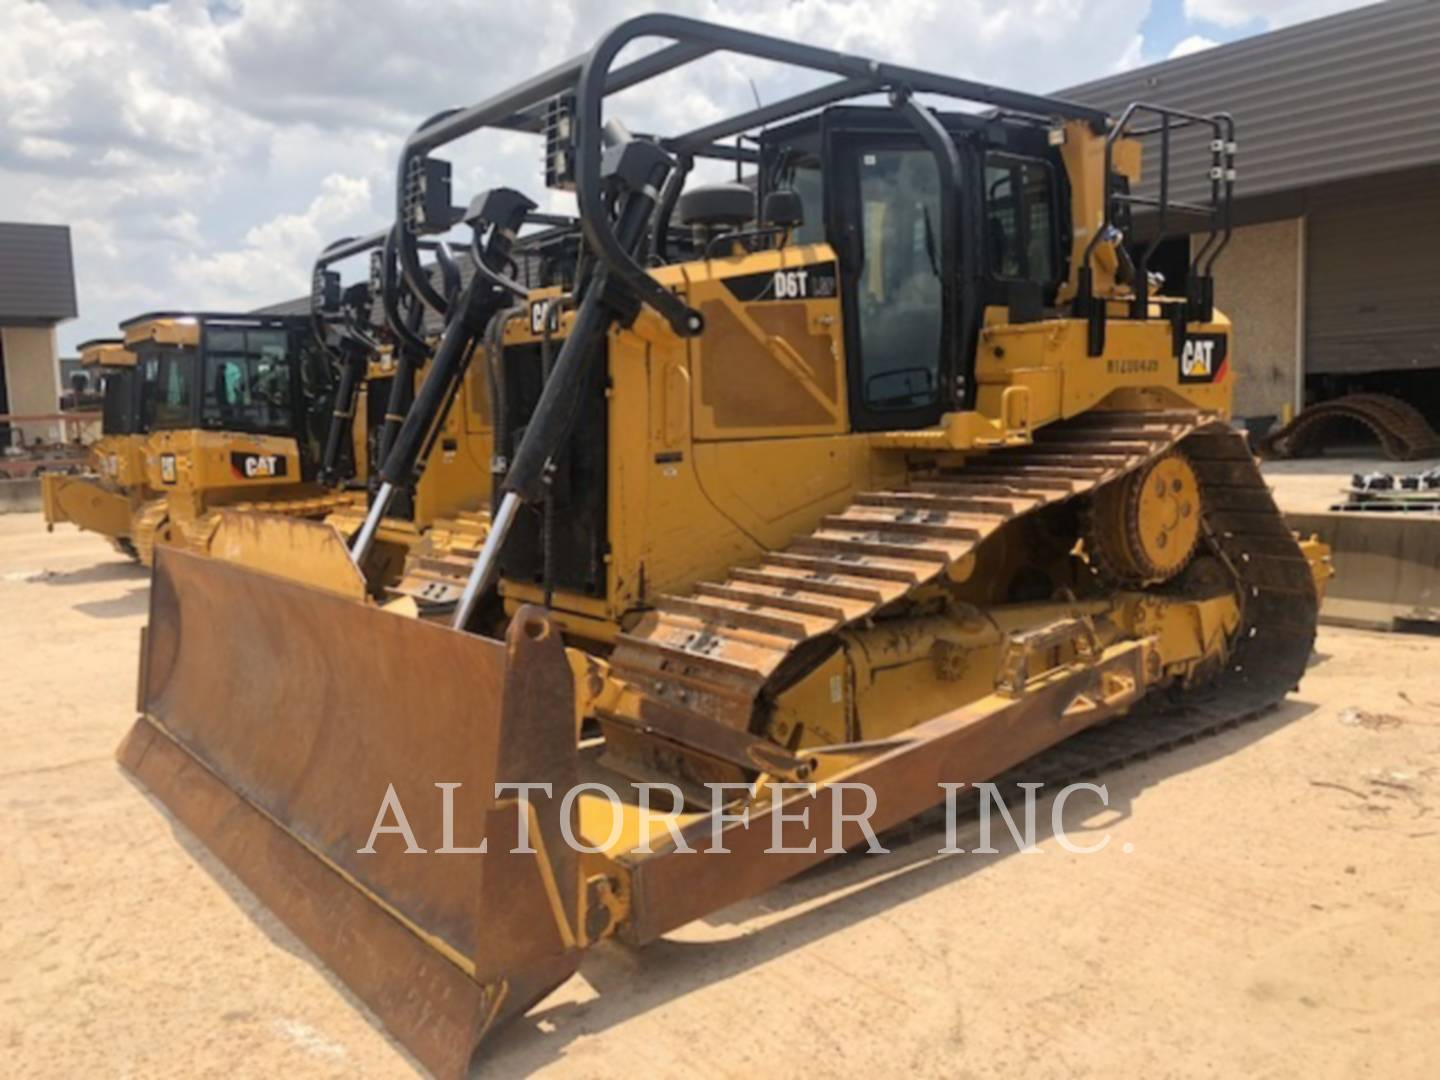 2015 Caterpillar D6T. Hours: 1768; Price: $319,000; Serial Number: HTZ00439